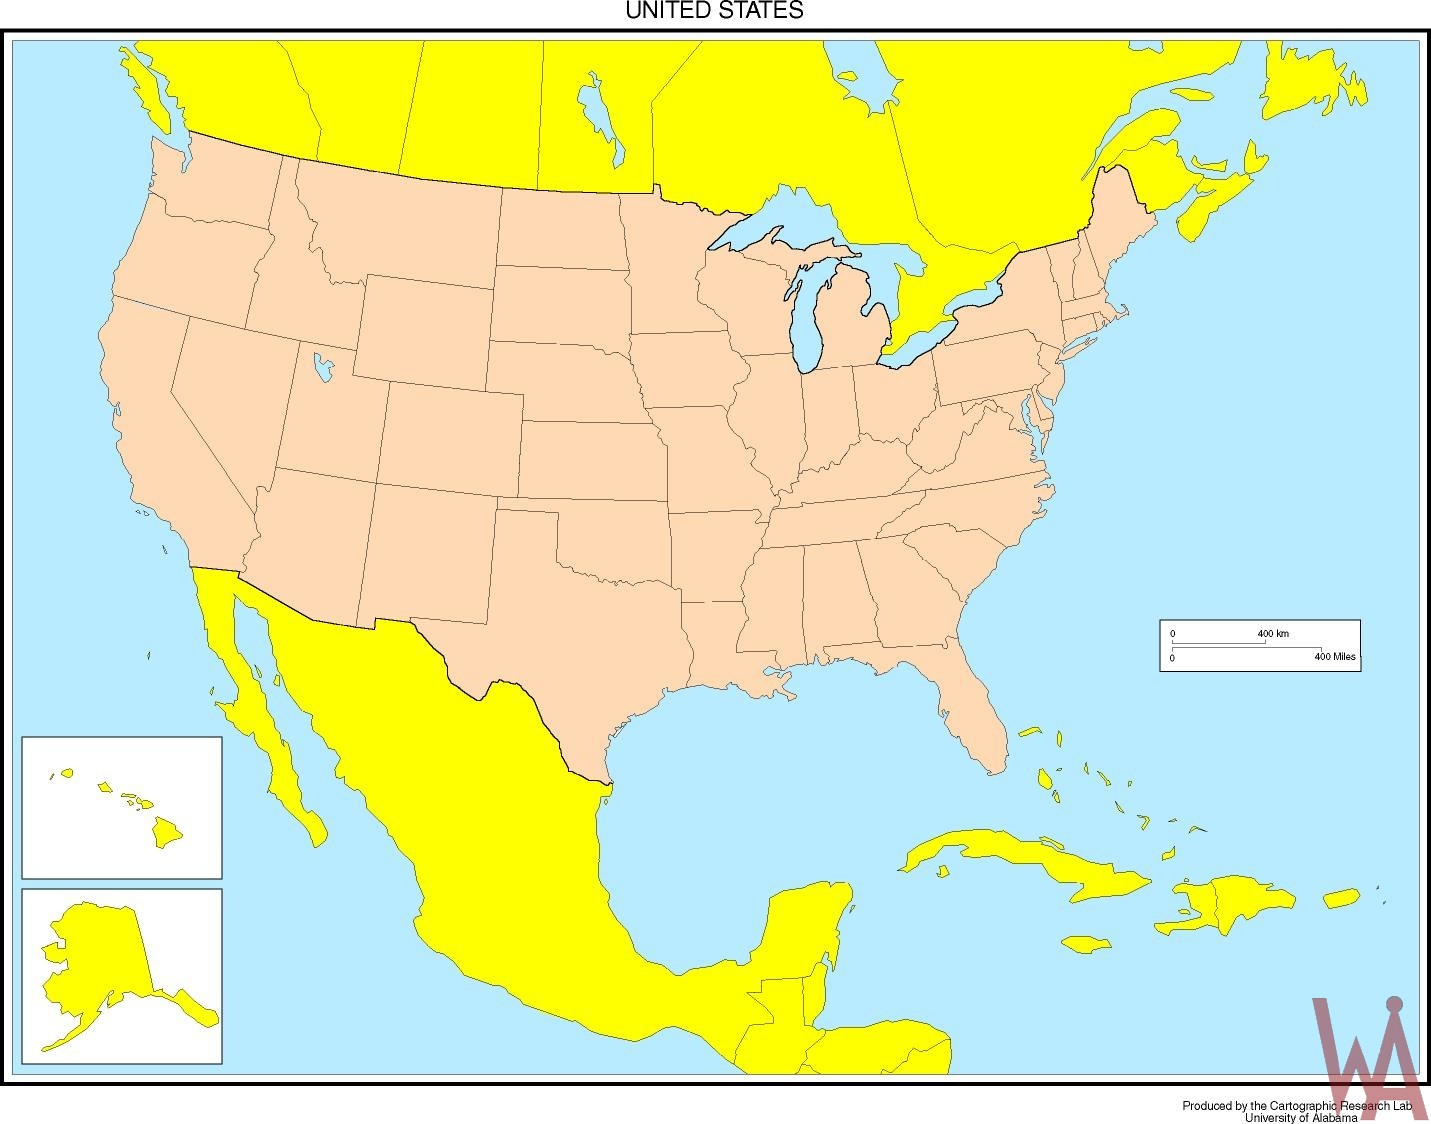 Blank Outline  Map  of the USA With Mexico